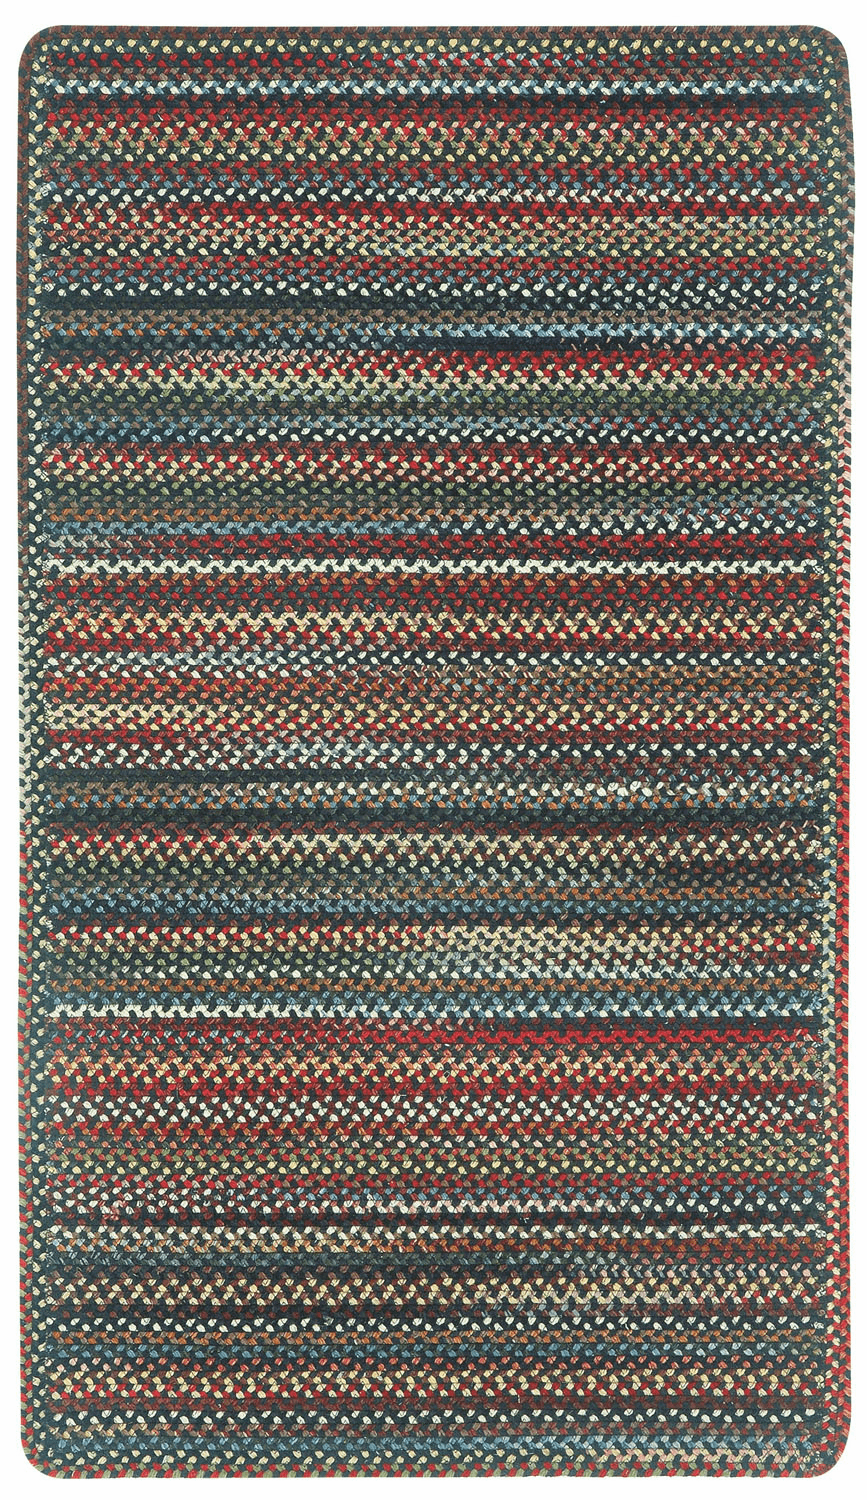 Hand-Braided Coal Rug